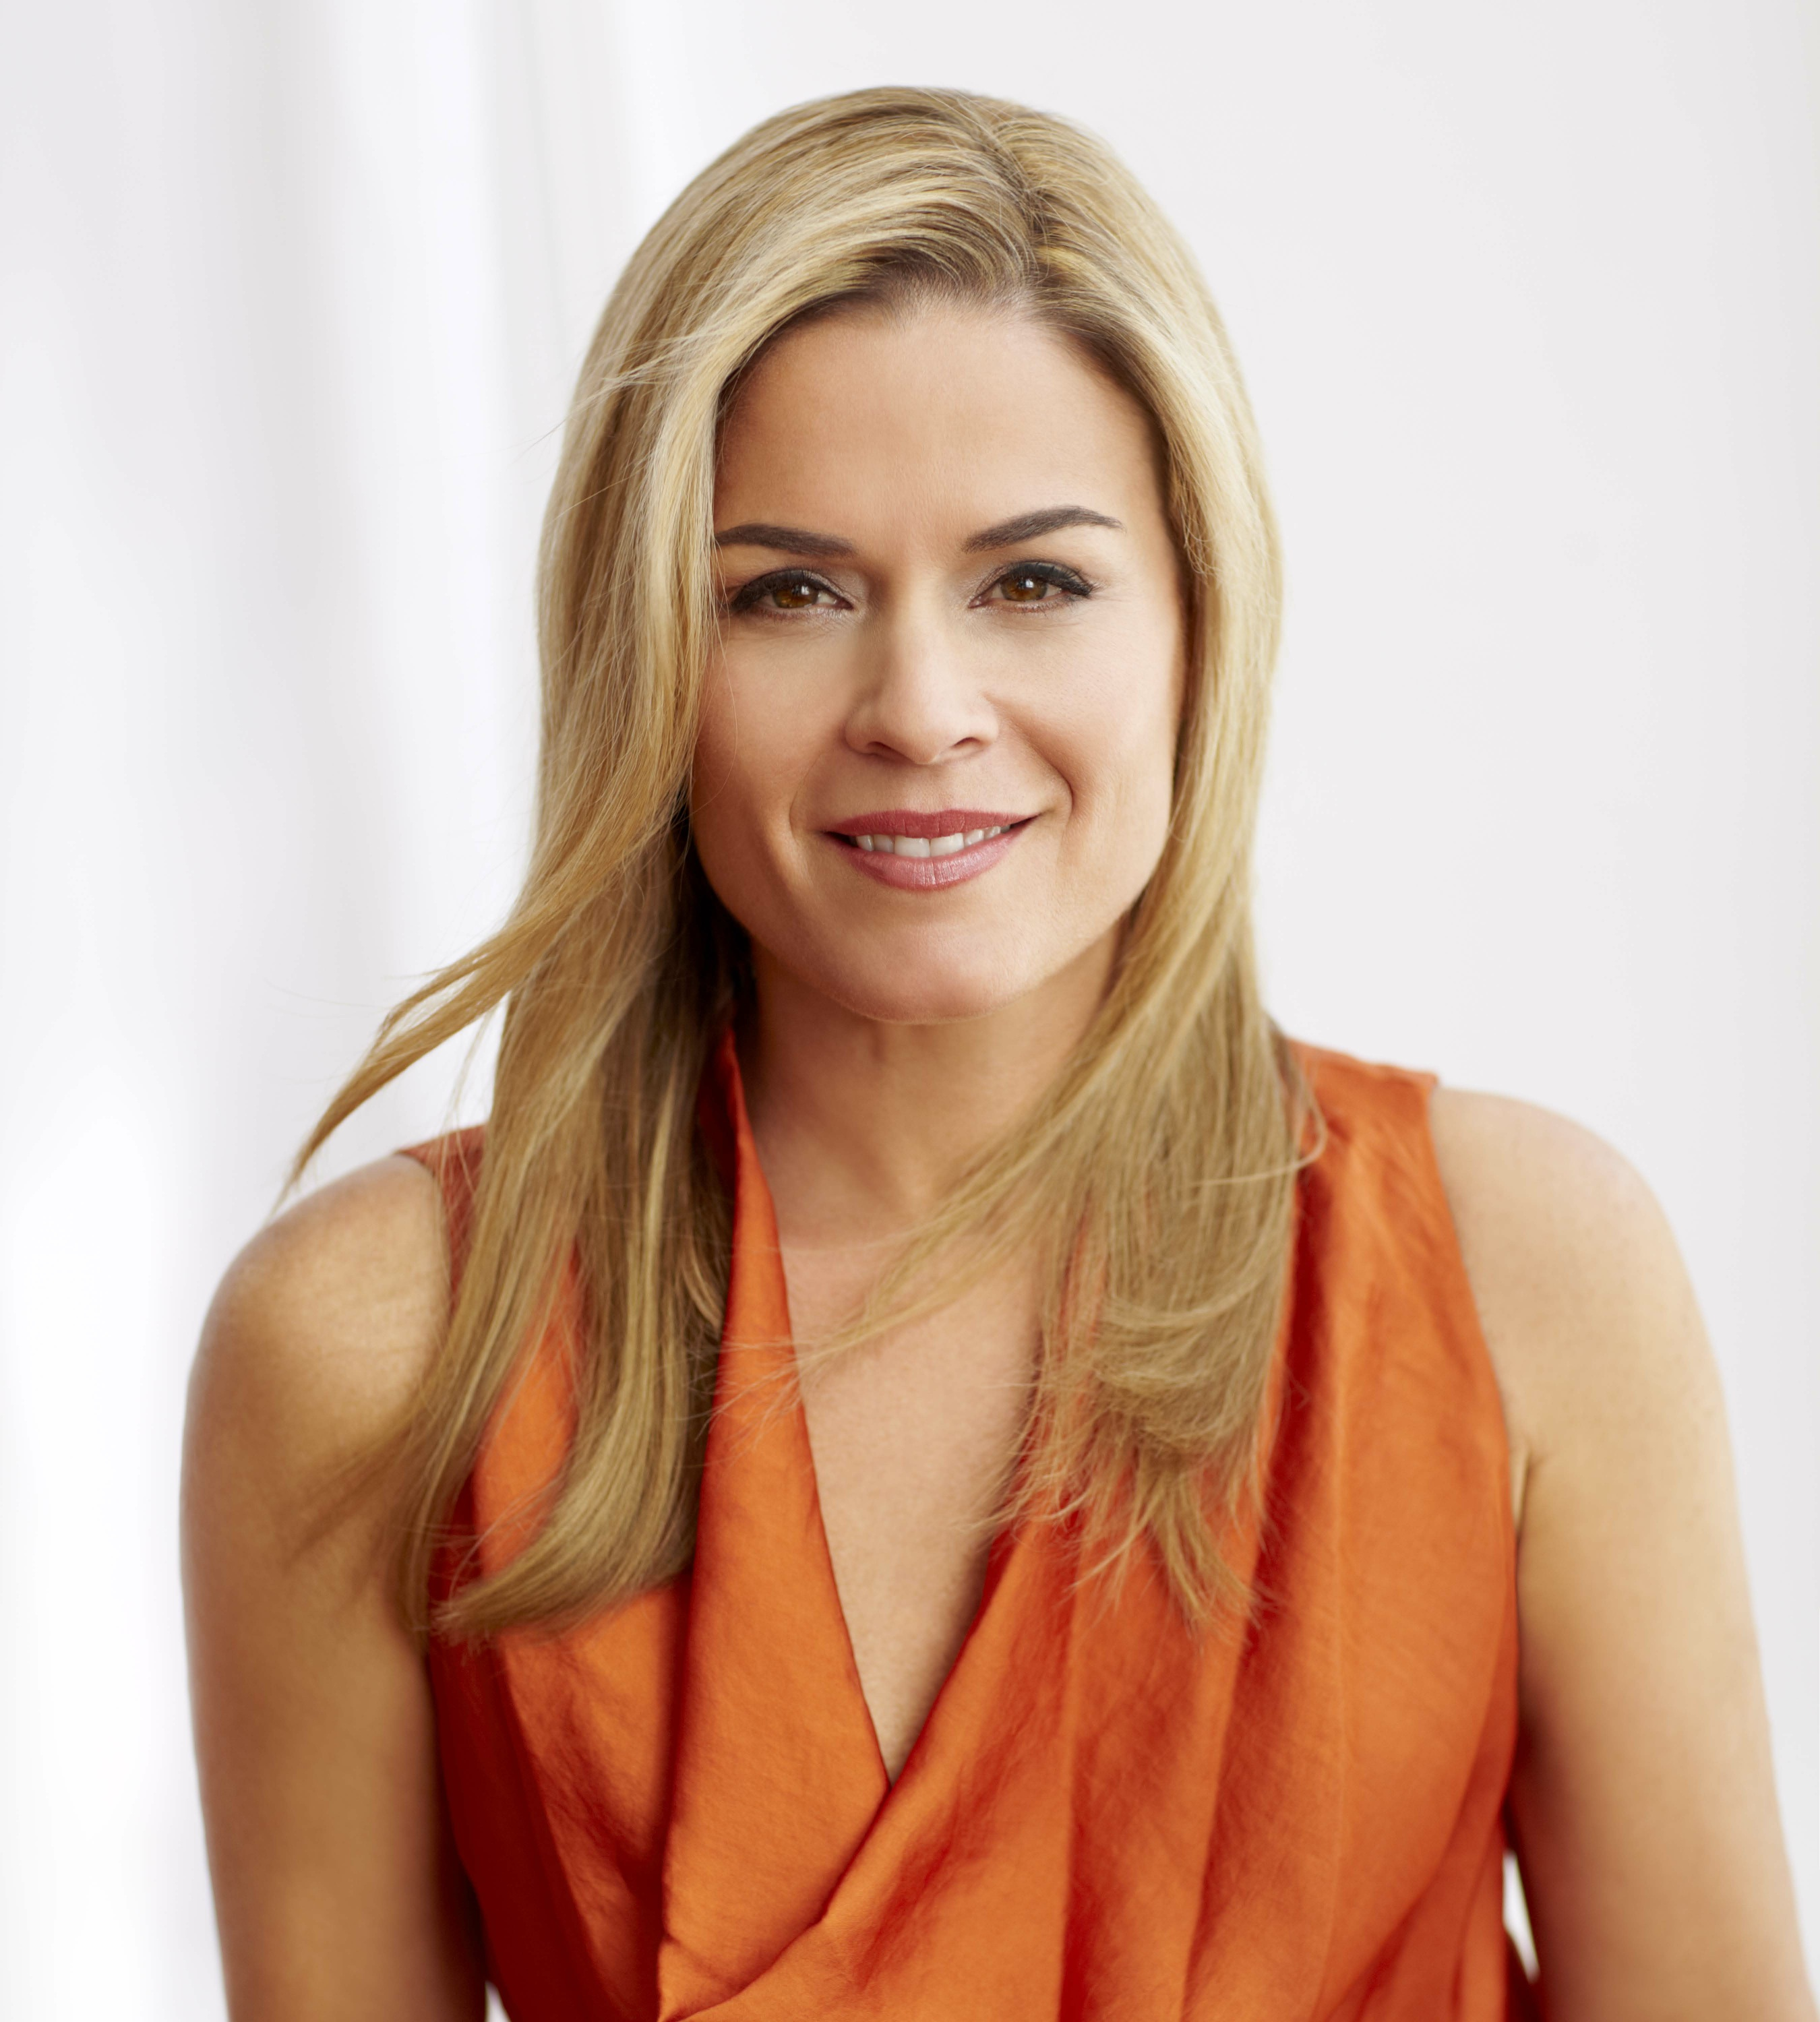 Cat Cora earned a  million dollar salary - leaving the net worth at 4.5 million in 2018